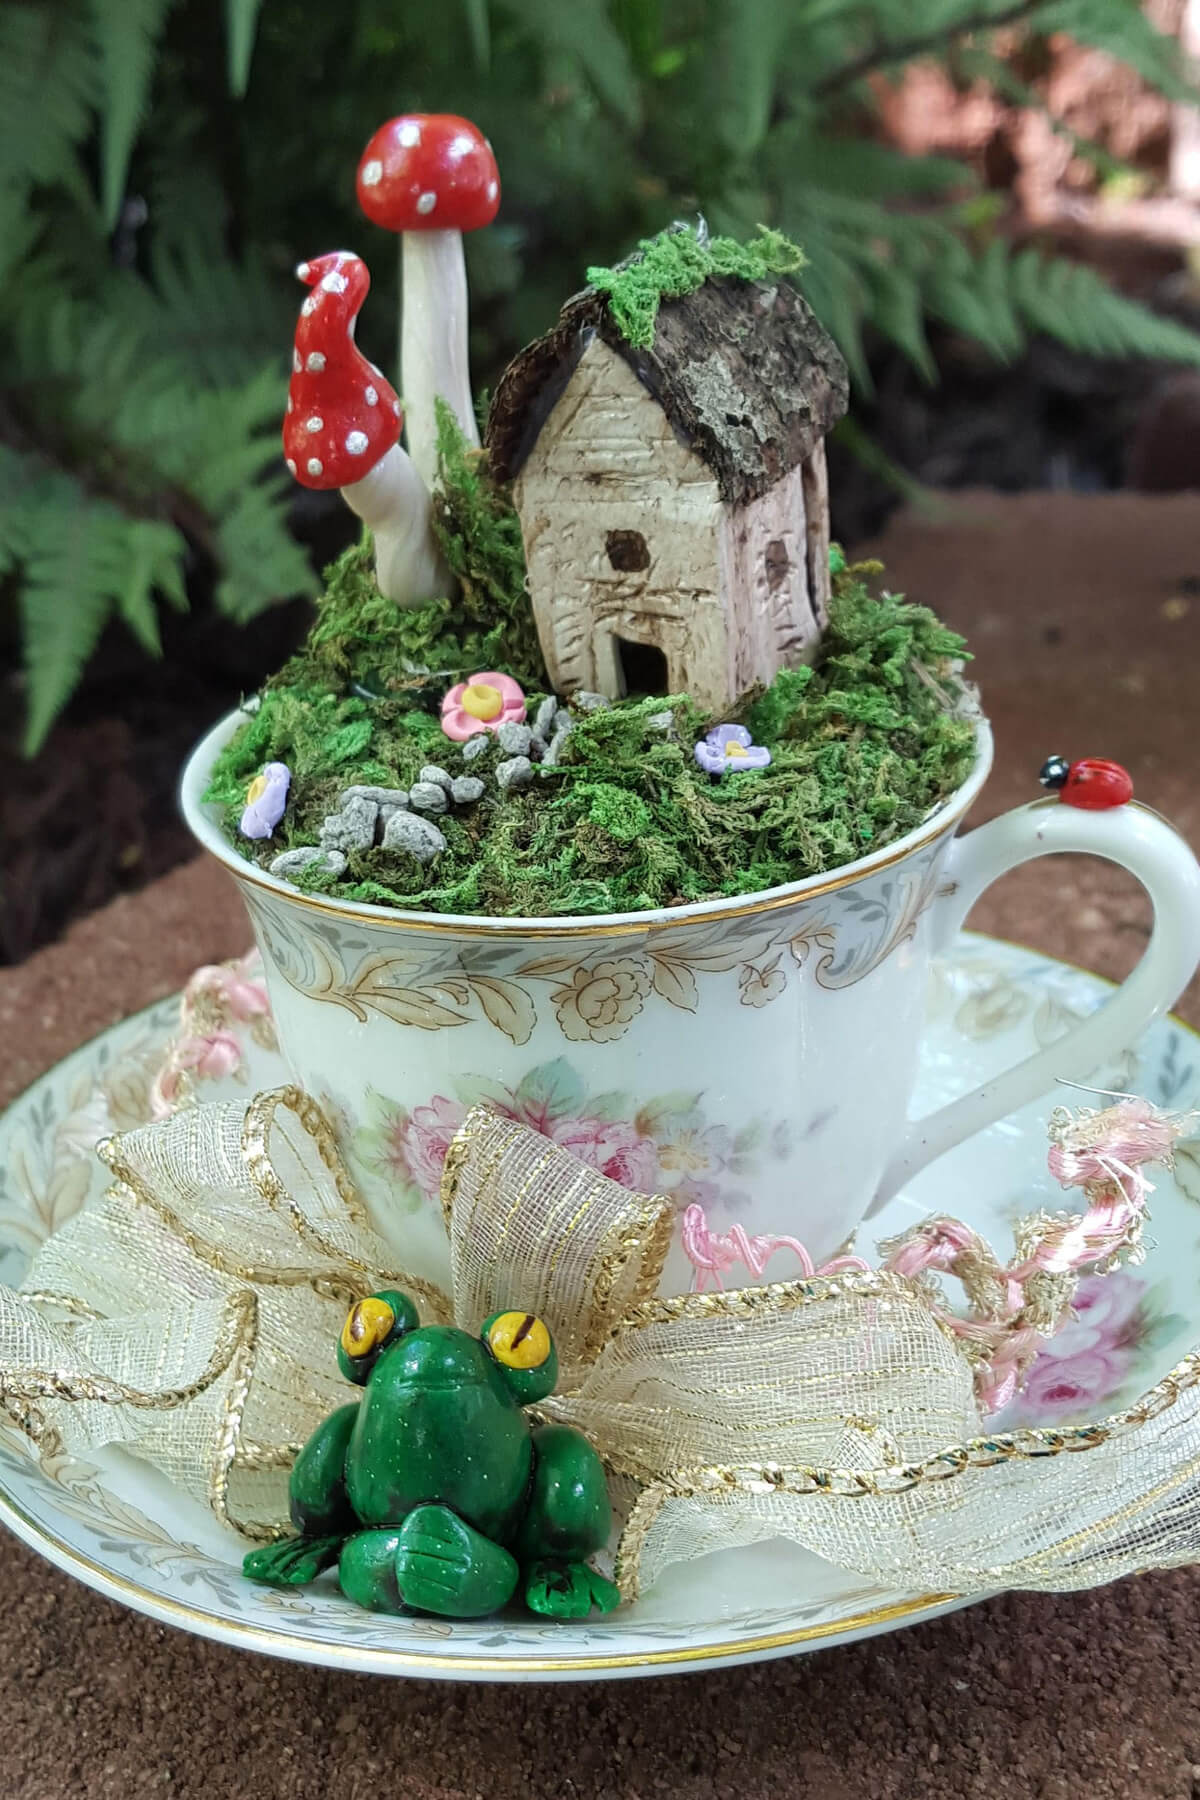 Toadstool Forest, Flower Garden, and Cabin